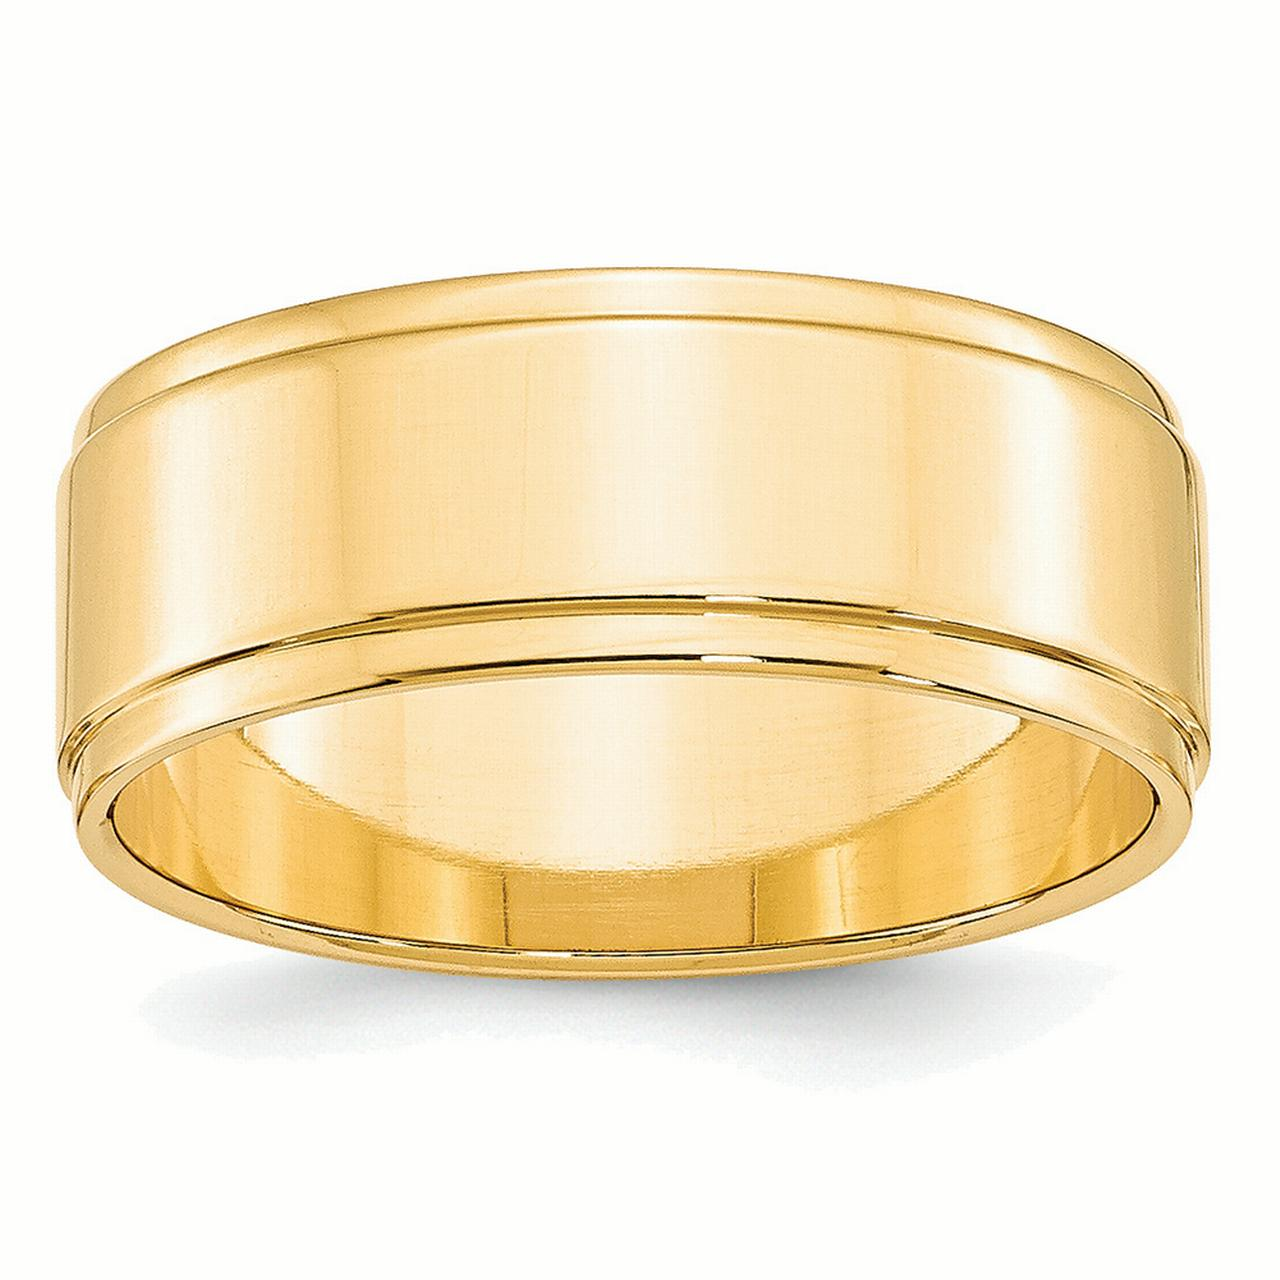 14k Yellow Gold 8mm Flat with Step Edge Band Ring FLE080 by